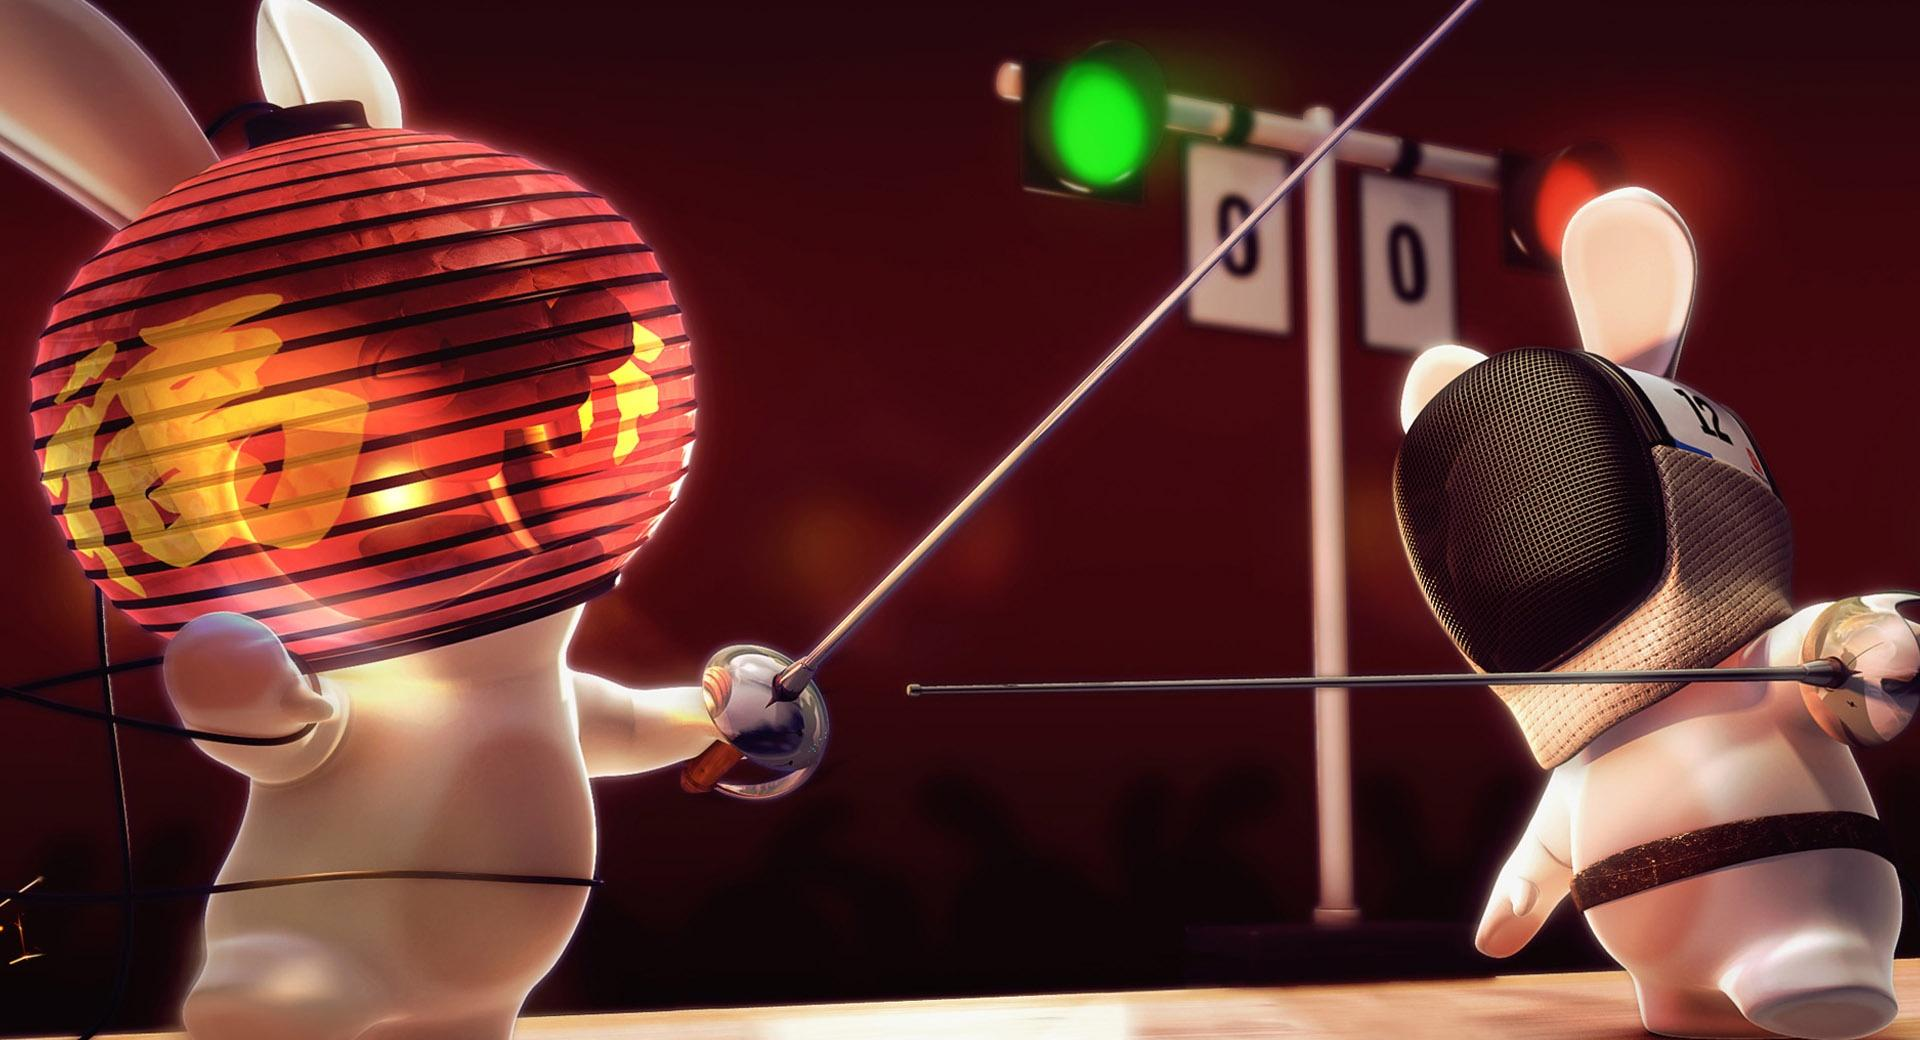 Rayman Raving Rabbids Fencing wallpapers HD quality